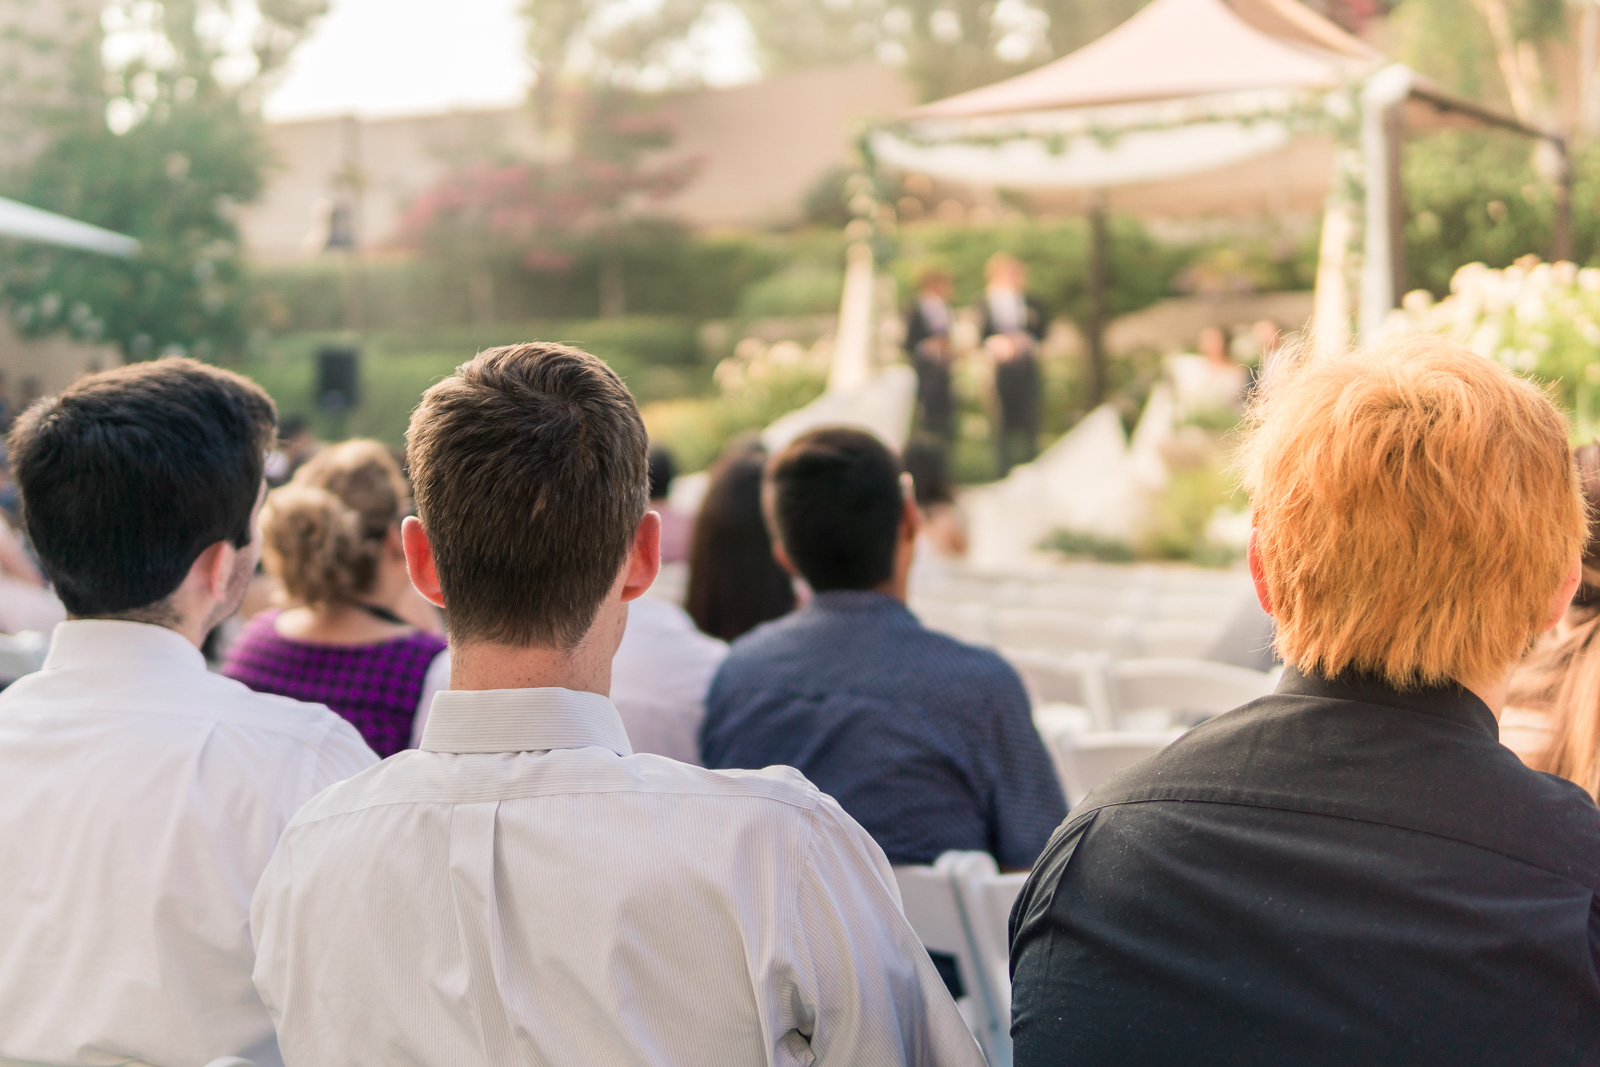 231_Angel-Brea-Orange-County_Joseph-Barber-Wedding-Photography.jpg